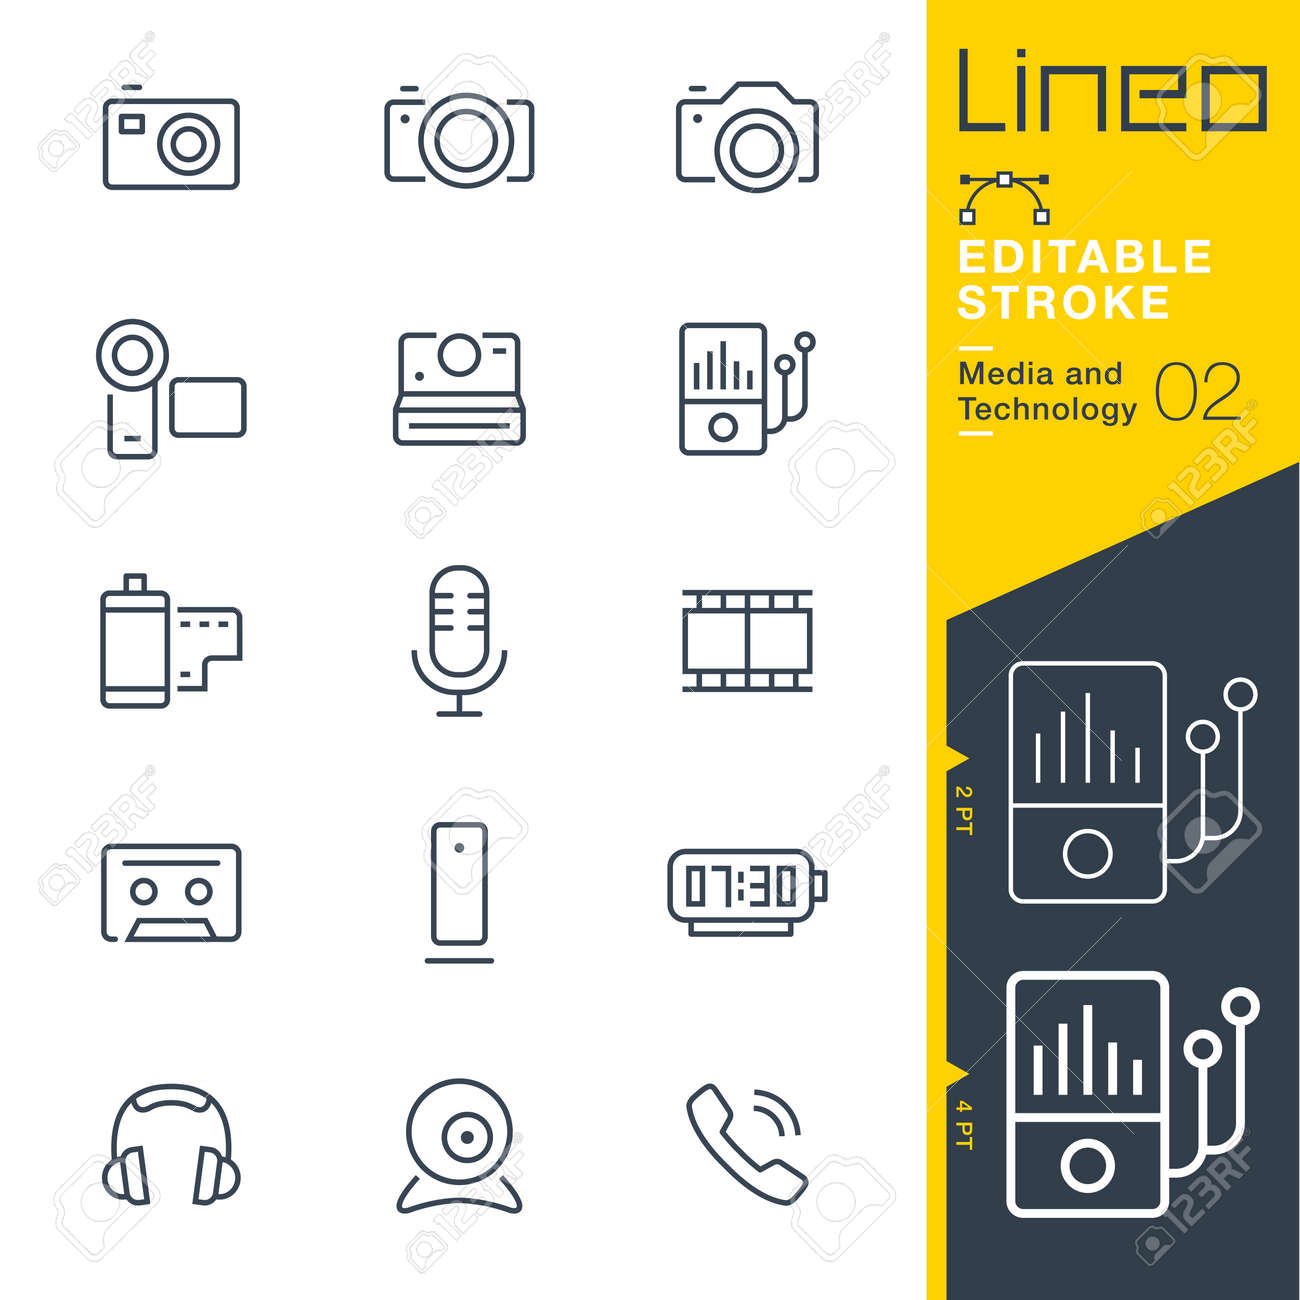 Lineo Editable Stroke - Media and Technology line icon - 84399460